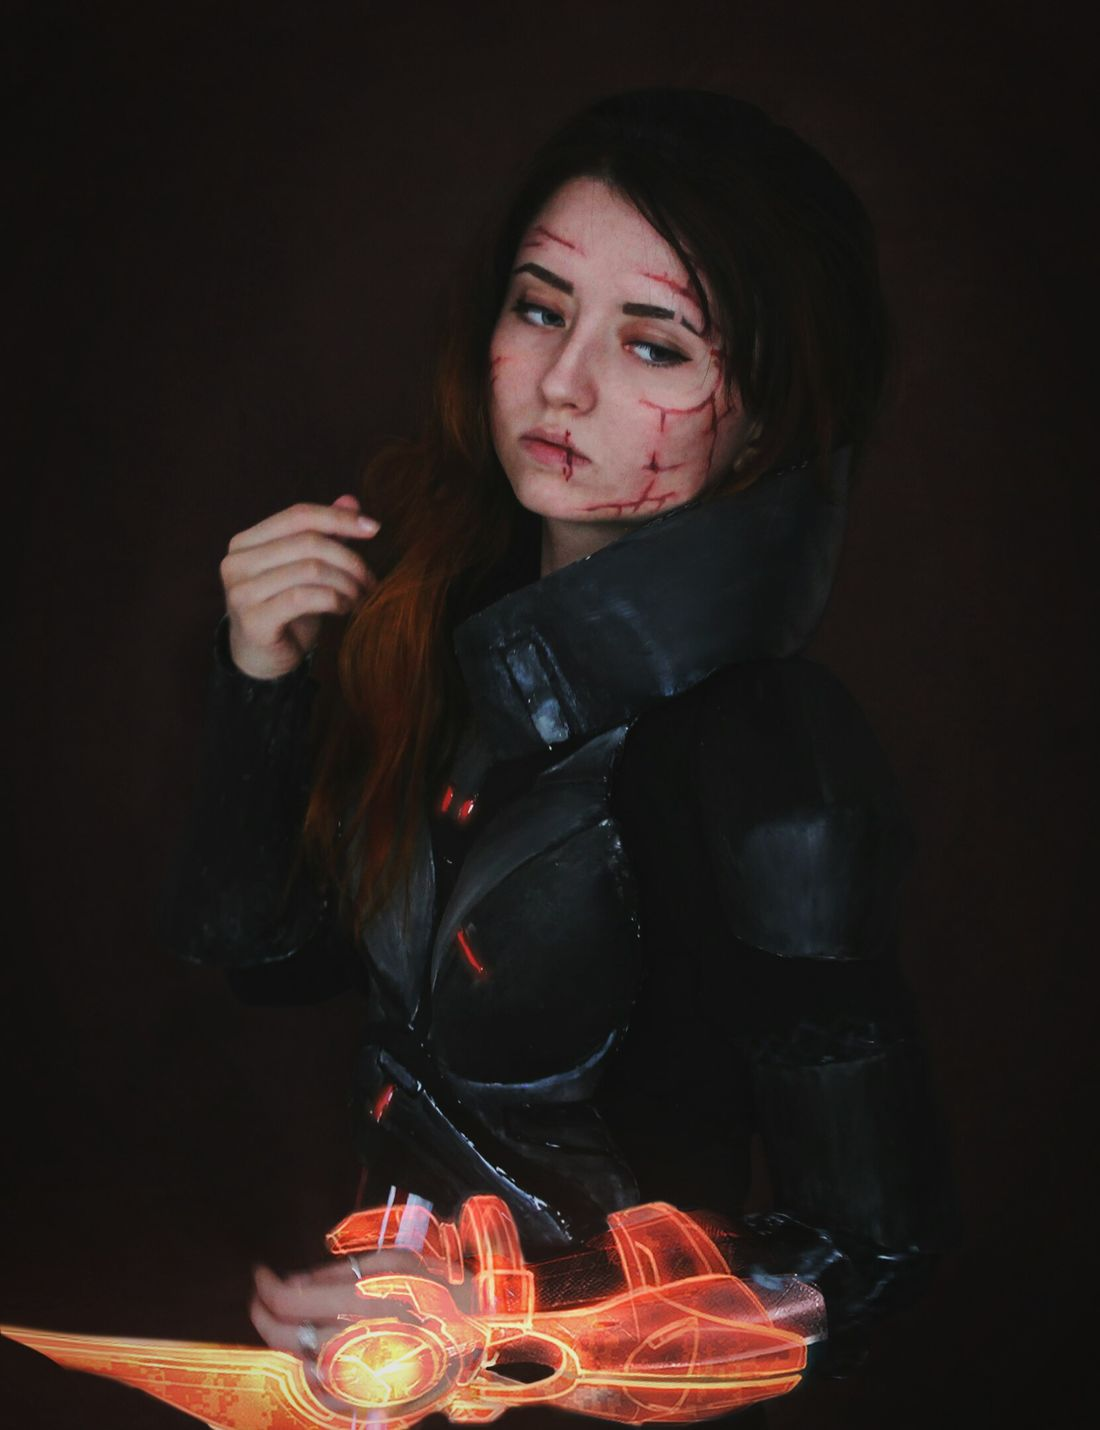 Cosplay Cosplayer Masseffect Masseffect2 MassEffect3 Videogames Photo Life Time Beauty Beautiful Expressions Light Darkness Spacer Young Women Girly Young Adult Scars